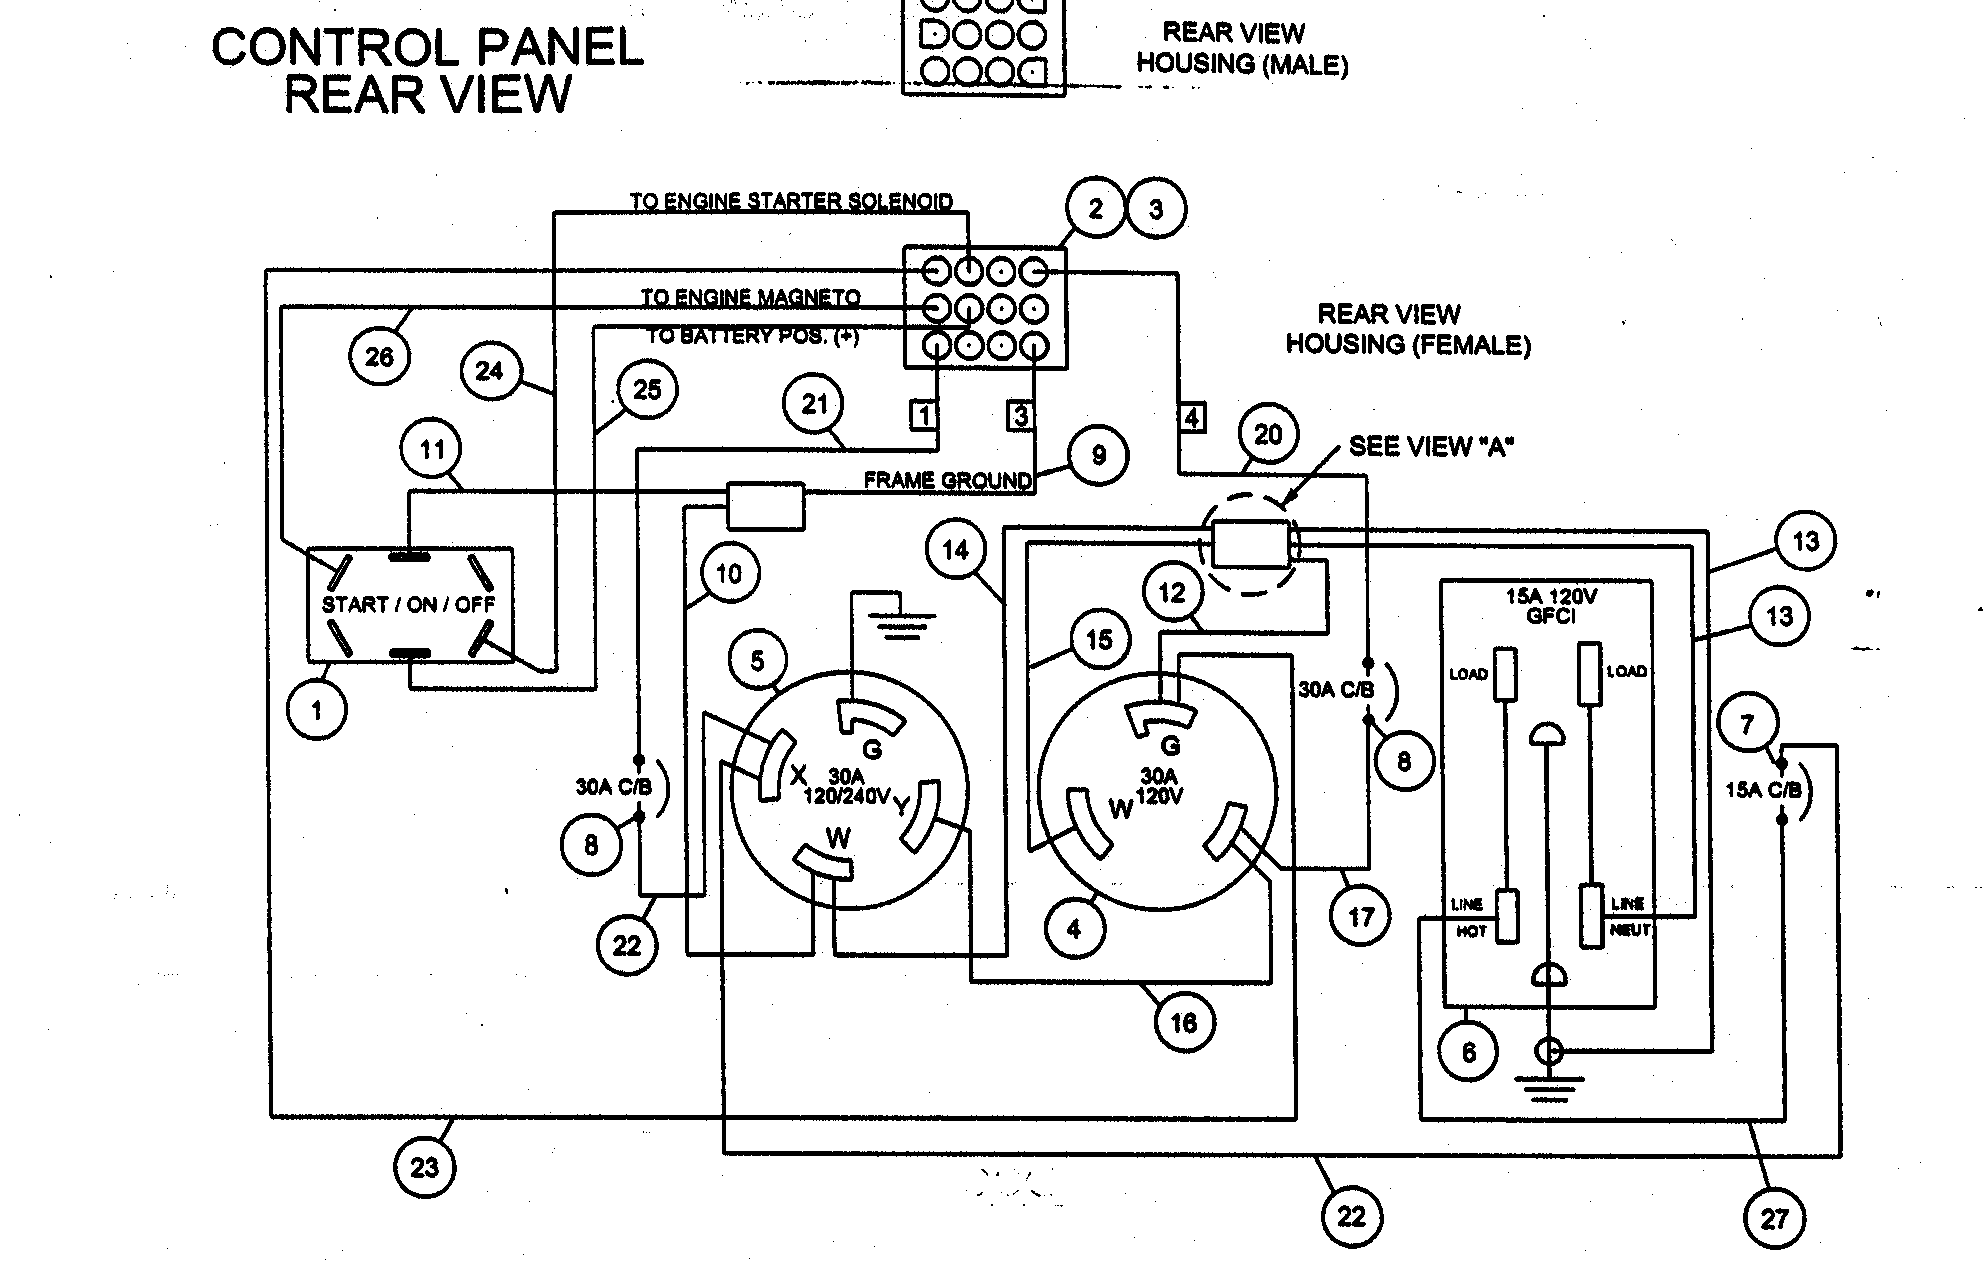 50024988 00006?resize\=665%2C422 kohler ch25s wiring diagram 23 hp kohler engine diagram, 20 hp kohler ch25s wiring diagram at crackthecode.co